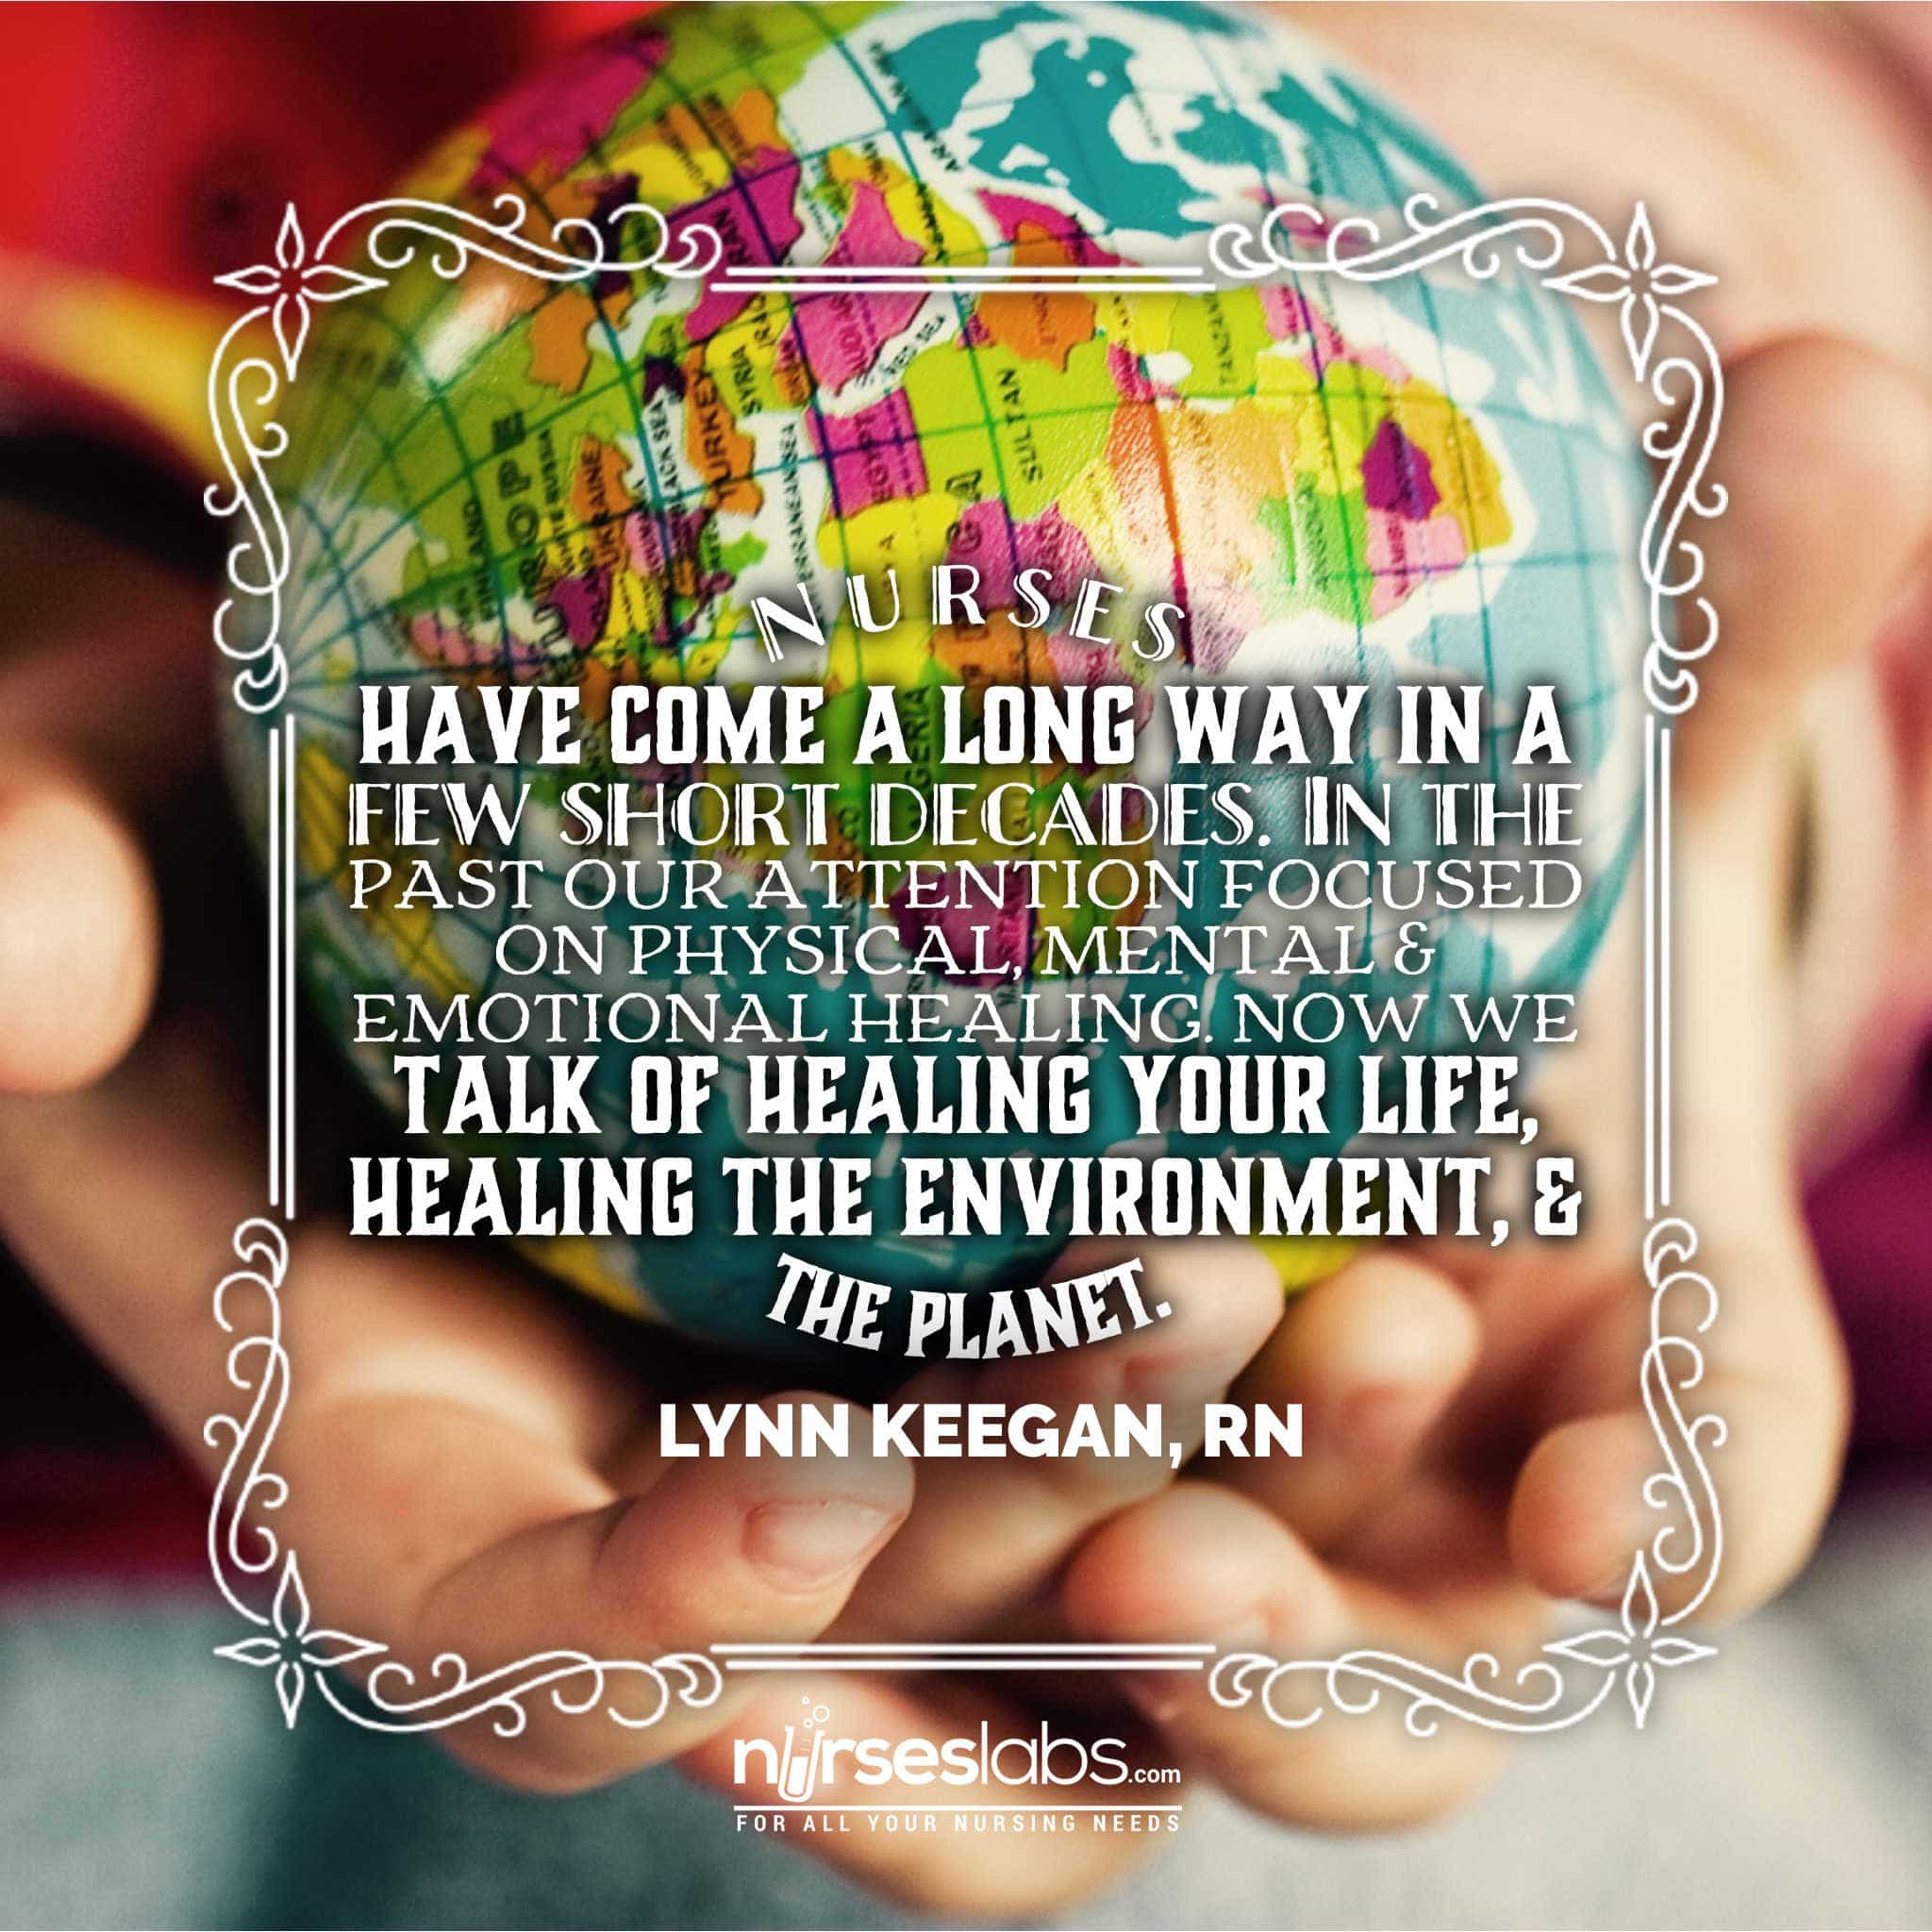 Nurses have come a long way in a few short decades. In the past our attention focused on physical, mental & emotional healing. Now we talk of healing your life, healing the environment, & the planet.